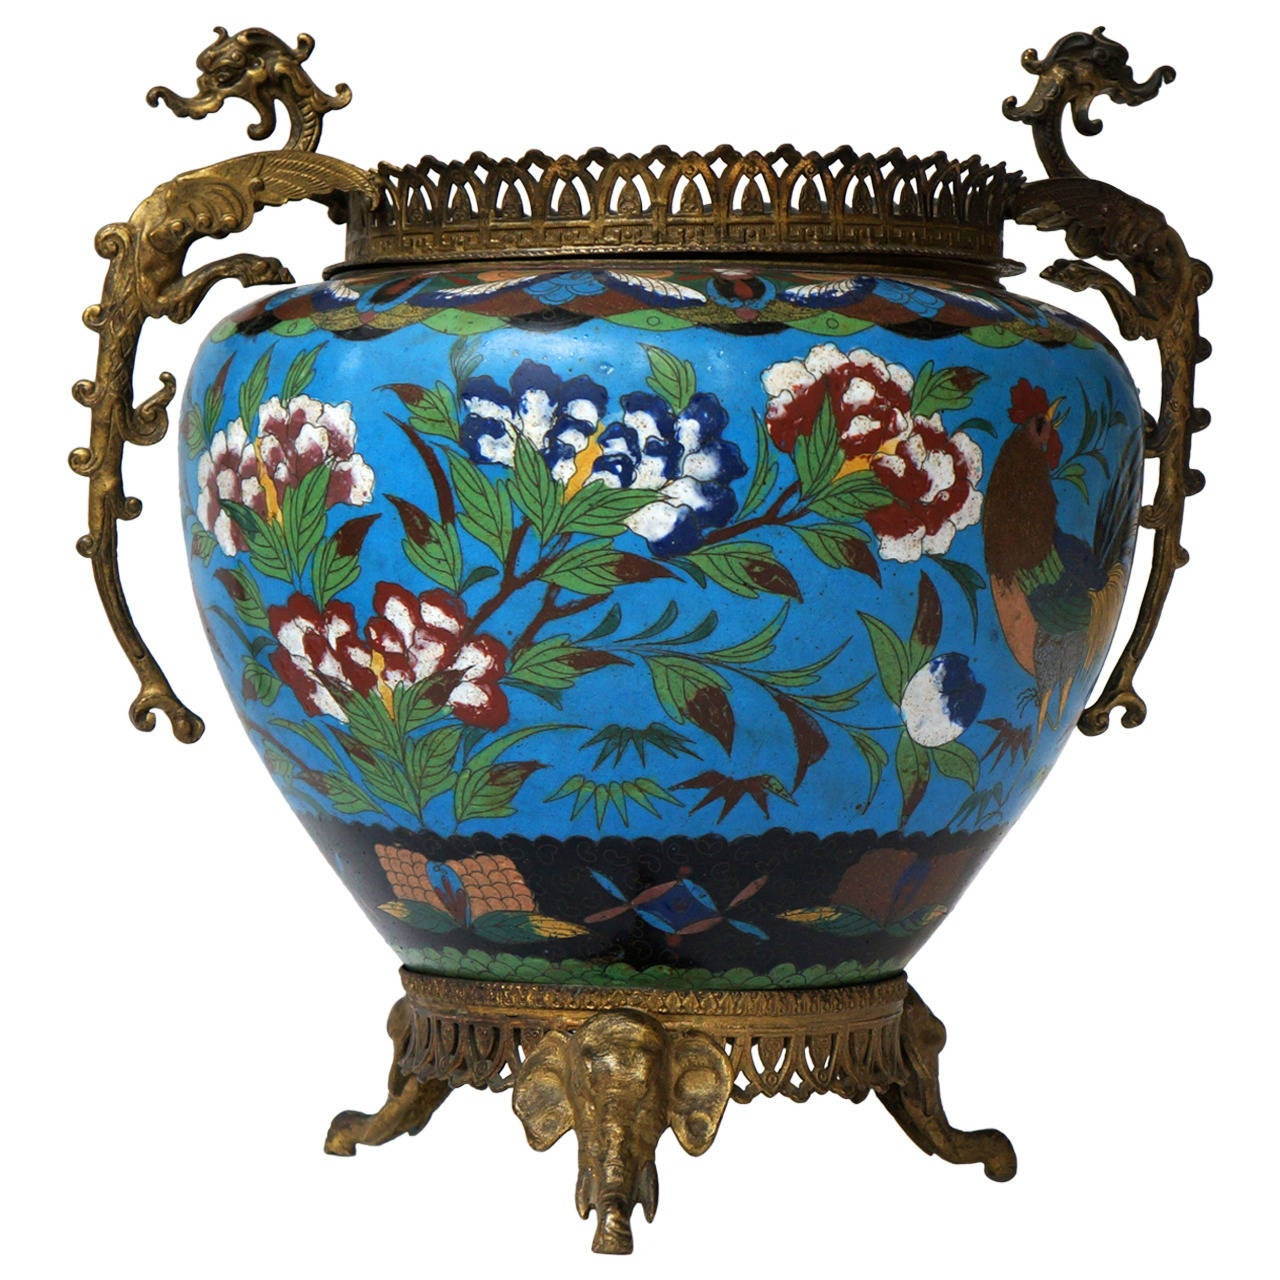 Large chinese cloisonn jardini re or planter pot for sale for Cloison stand